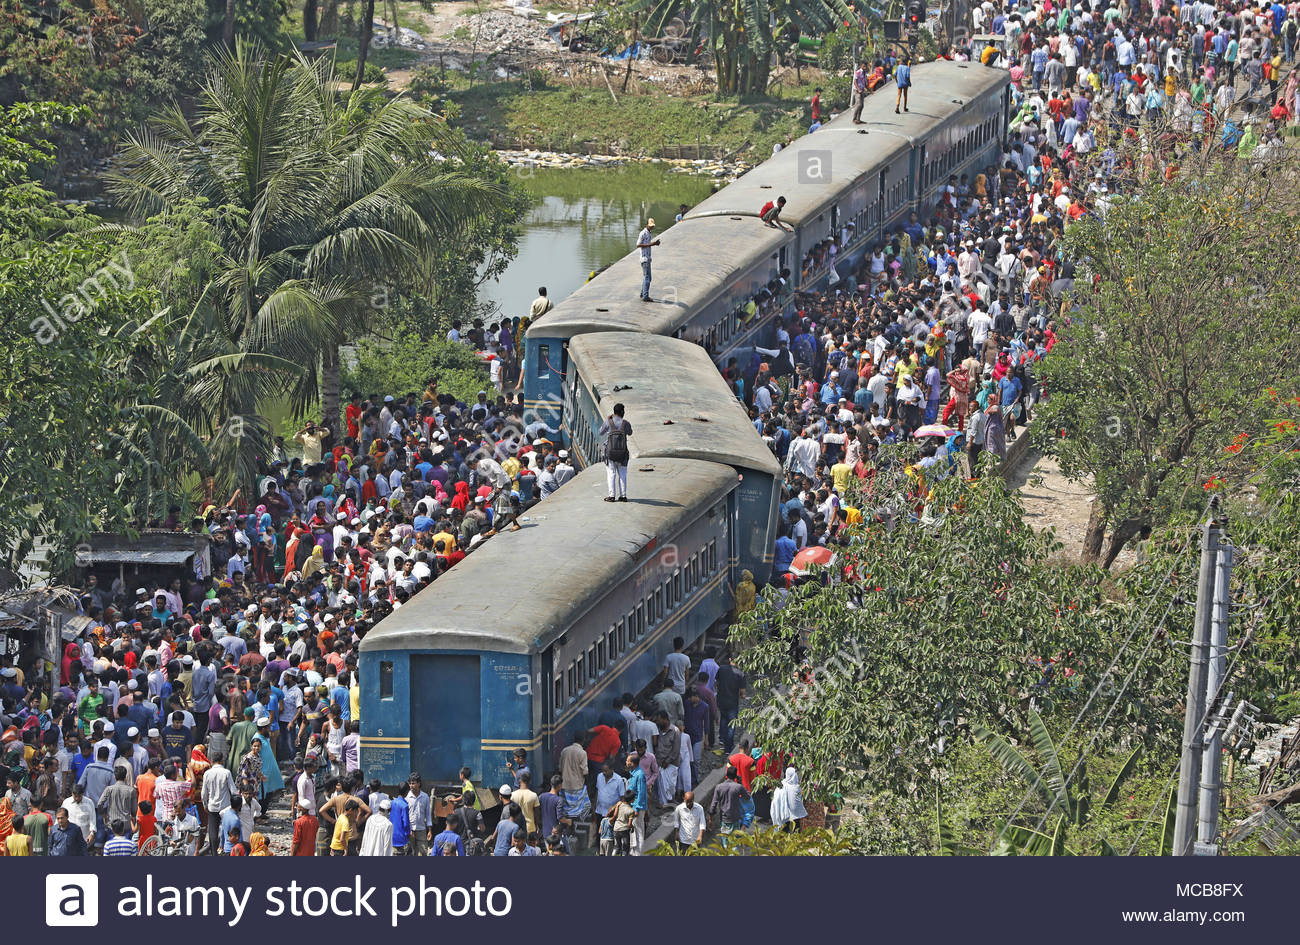 Tongi, Bangladesh. 15th Apr, 2018. People gather around a derailed train in Tongi on the outskirts of Bangladesh's capital Dhaka on April 15, 2018. At least four people were killed when four compartments of a train were derailed. The crash left roughly 26 people injured, Rakibul Haque, a Tongi railway police official told. (c) copyright Credit: CrowdSpark/Alamy Live News - Stock Image